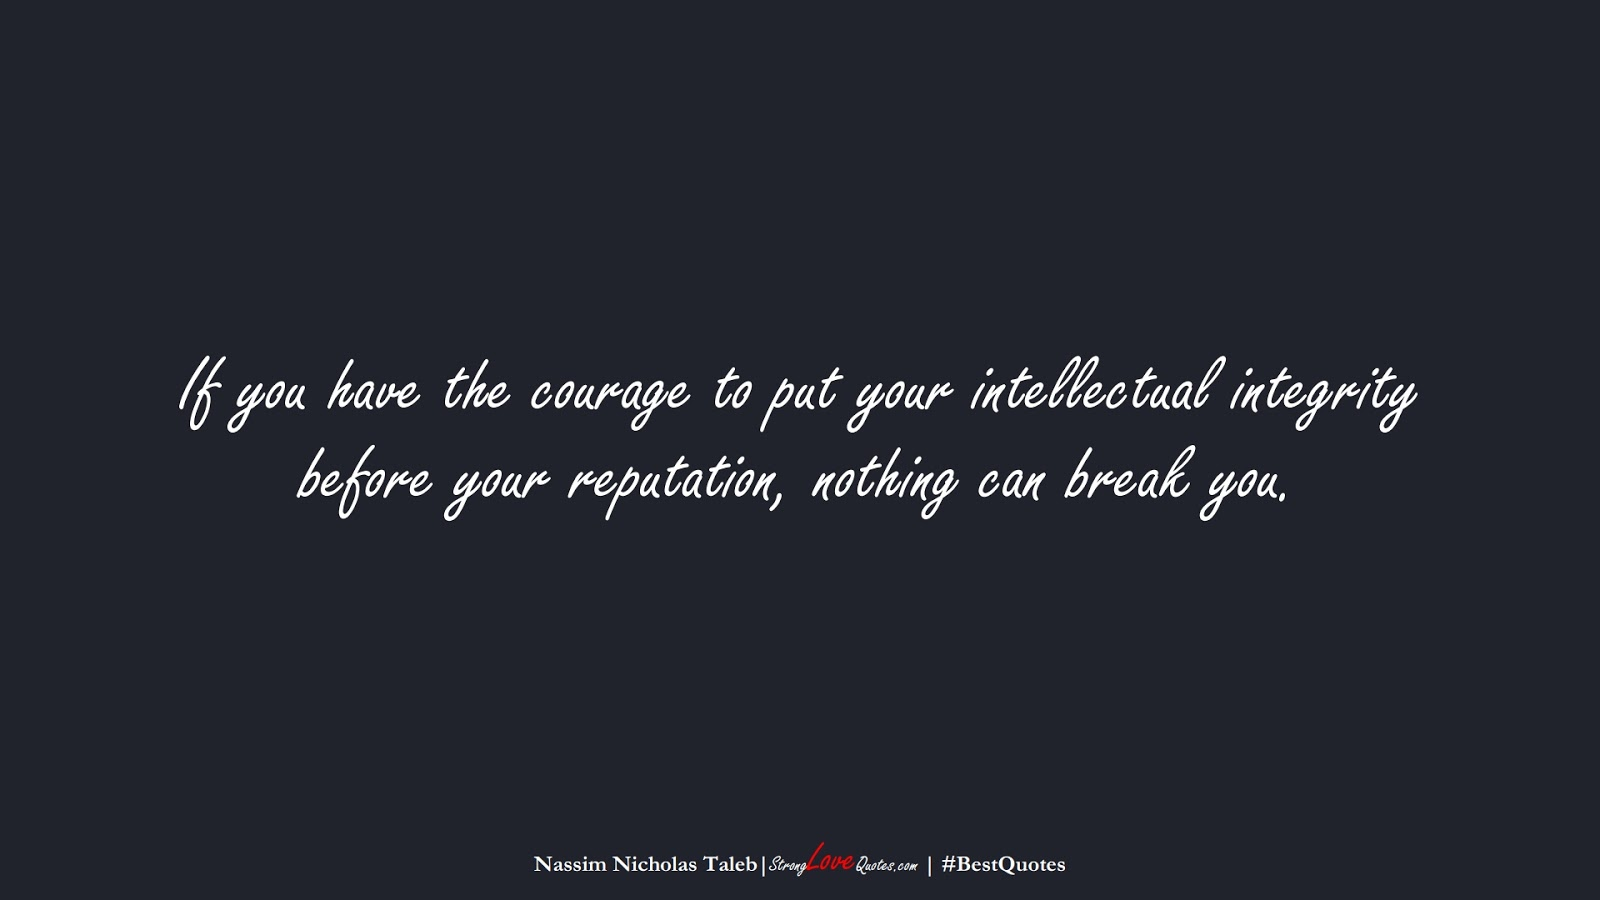 If you have the courage to put your intellectual integrity before your reputation, nothing can break you. (Nassim Nicholas Taleb);  #BestQuotes